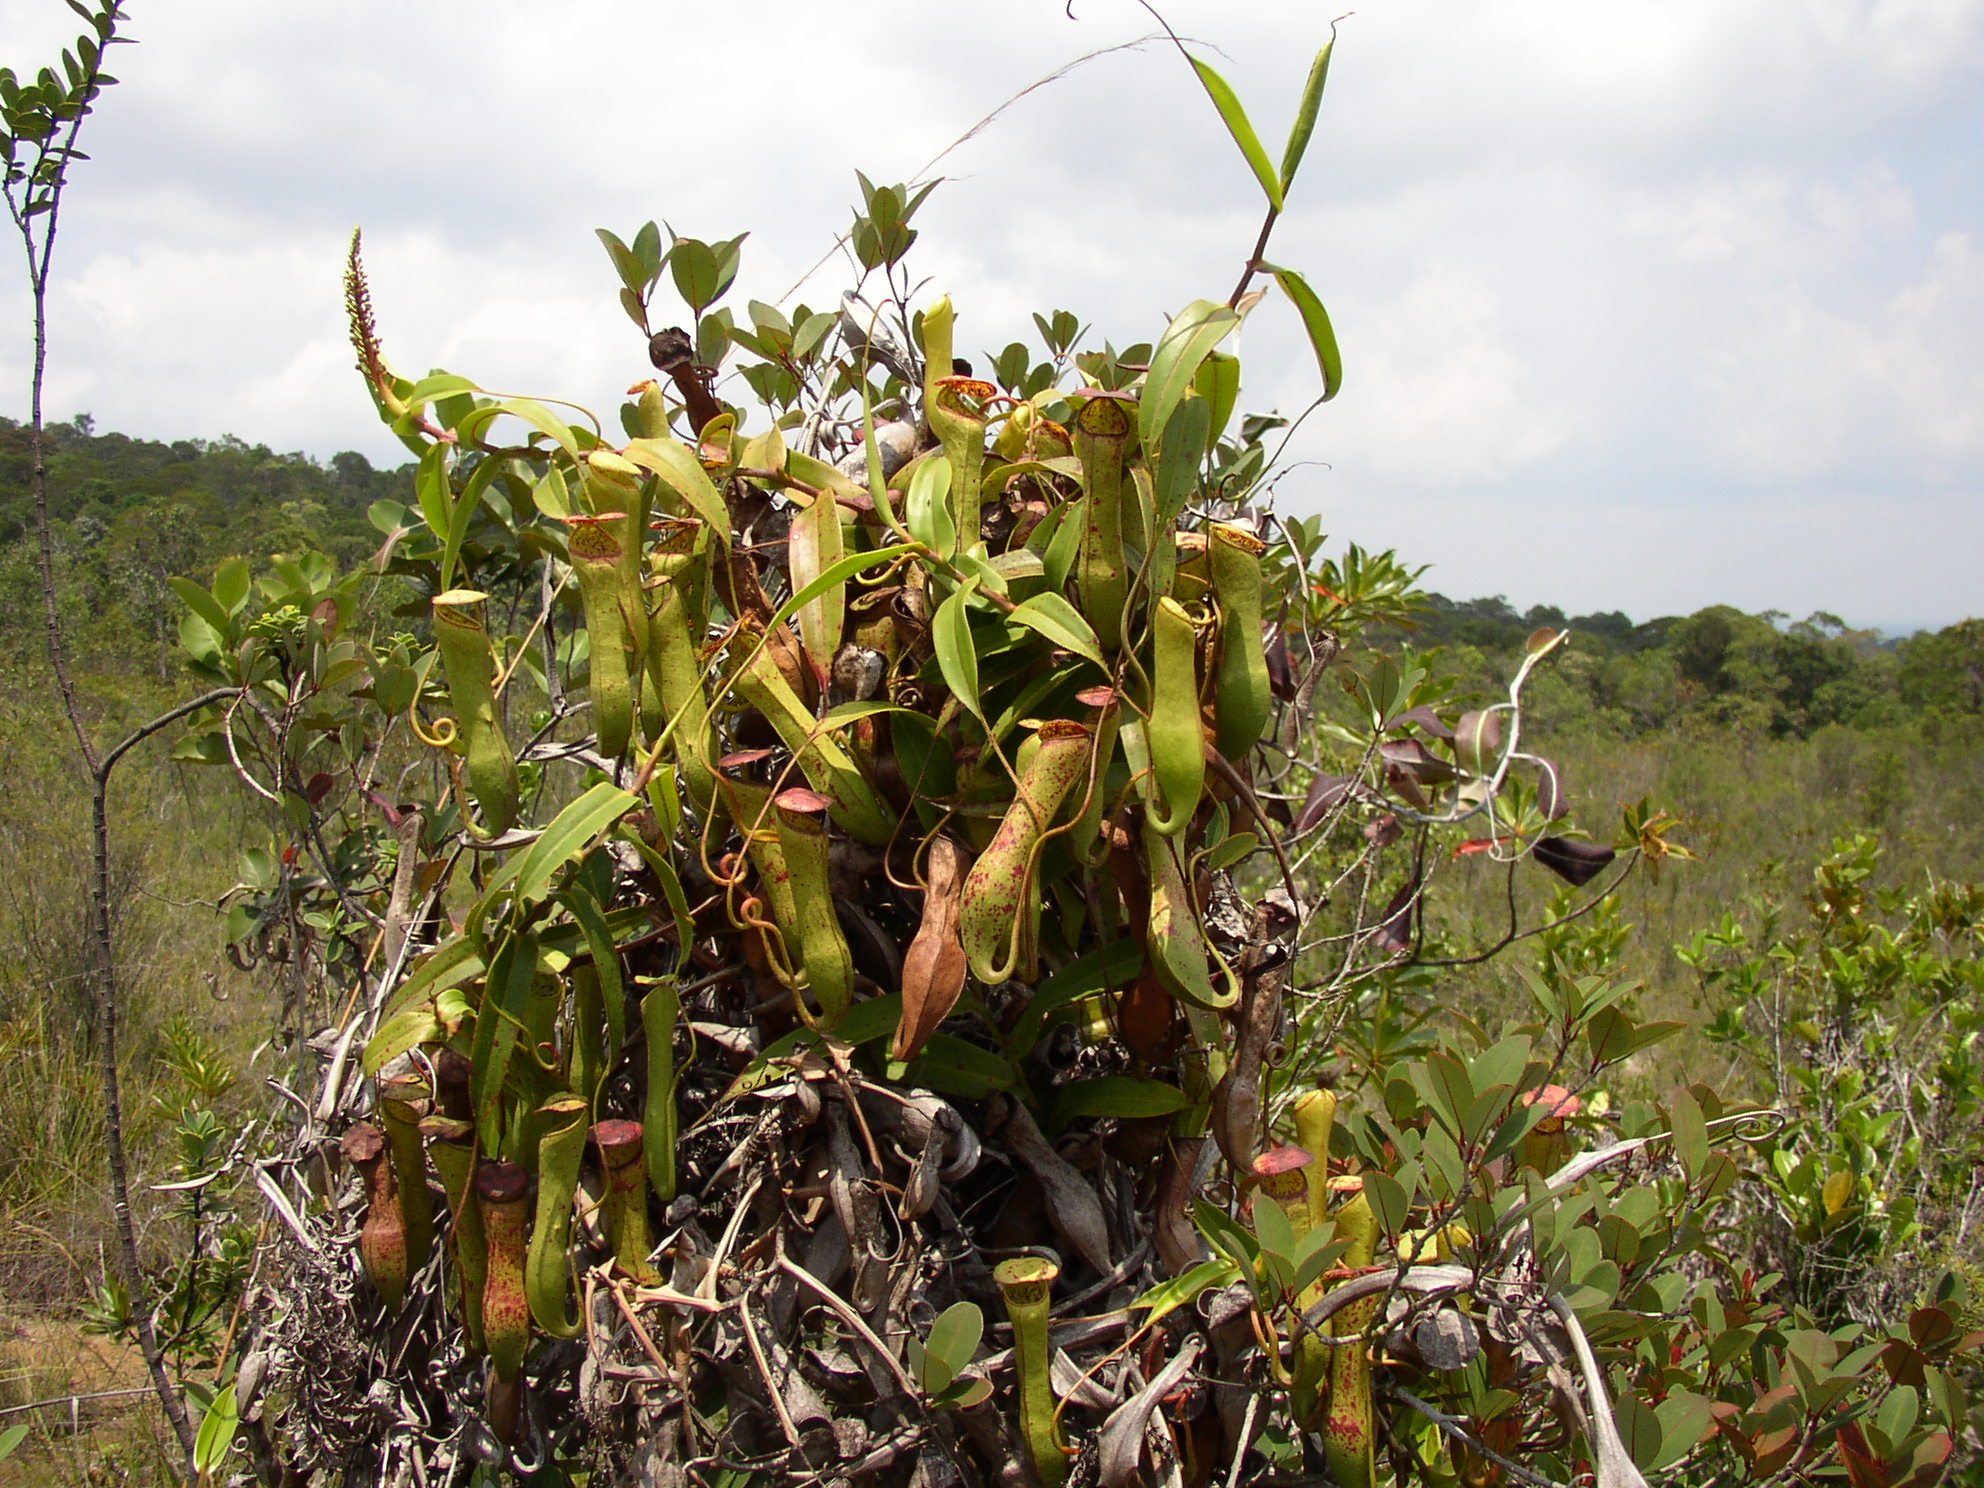 Nepenthes_gracilis_mass.jpg